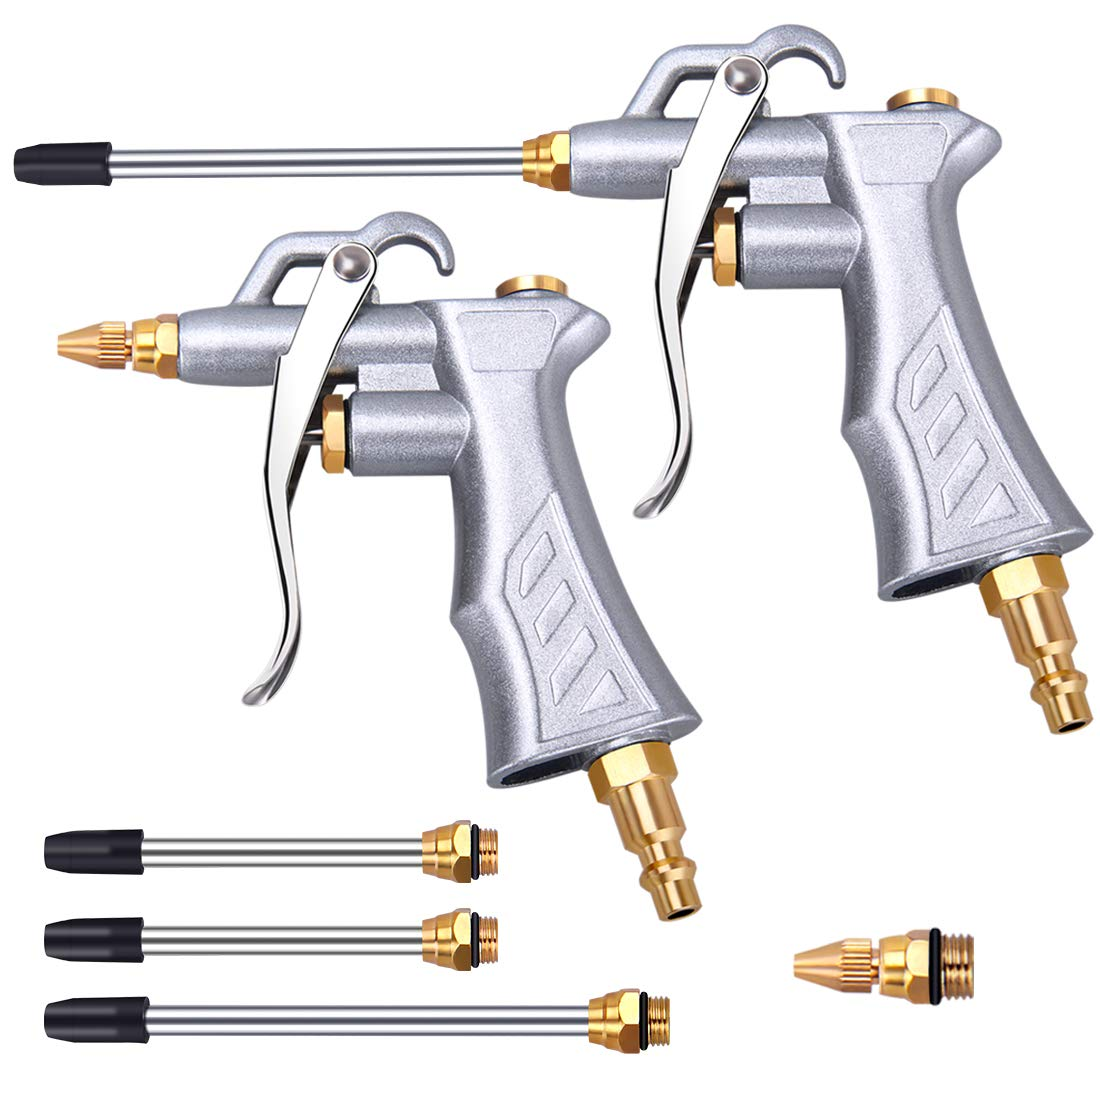 Industrial Air Blow Gun with Brass Adjustable Air Flow Nozzle and 2 Steel Air flow Extension, Pneumatic Air Compressor Accessory Tool Dust Cleaning Air Blower Gun-2 Pack